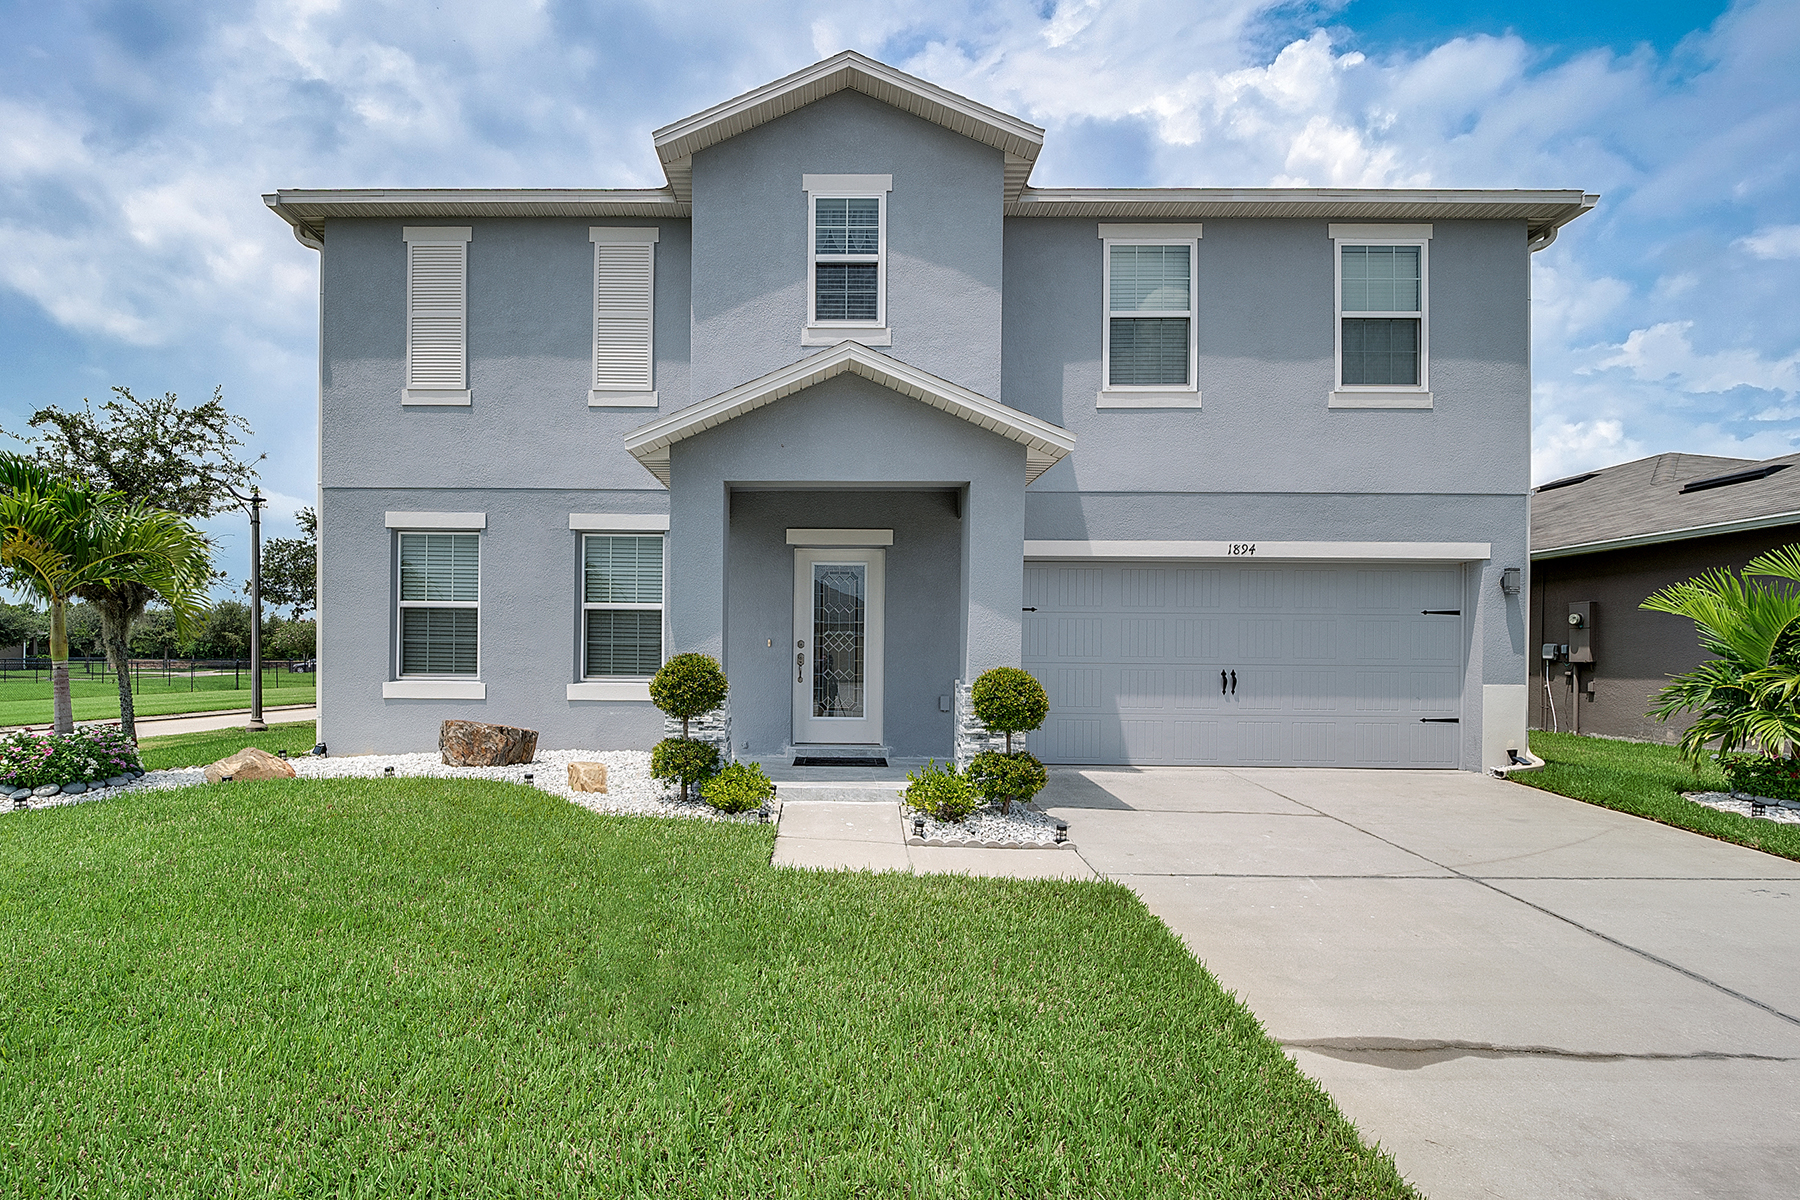 Single Family Homes for Sale at SAINT CLOUD 1894 Soldiers Pass St. Cloud, Florida 34769 United States